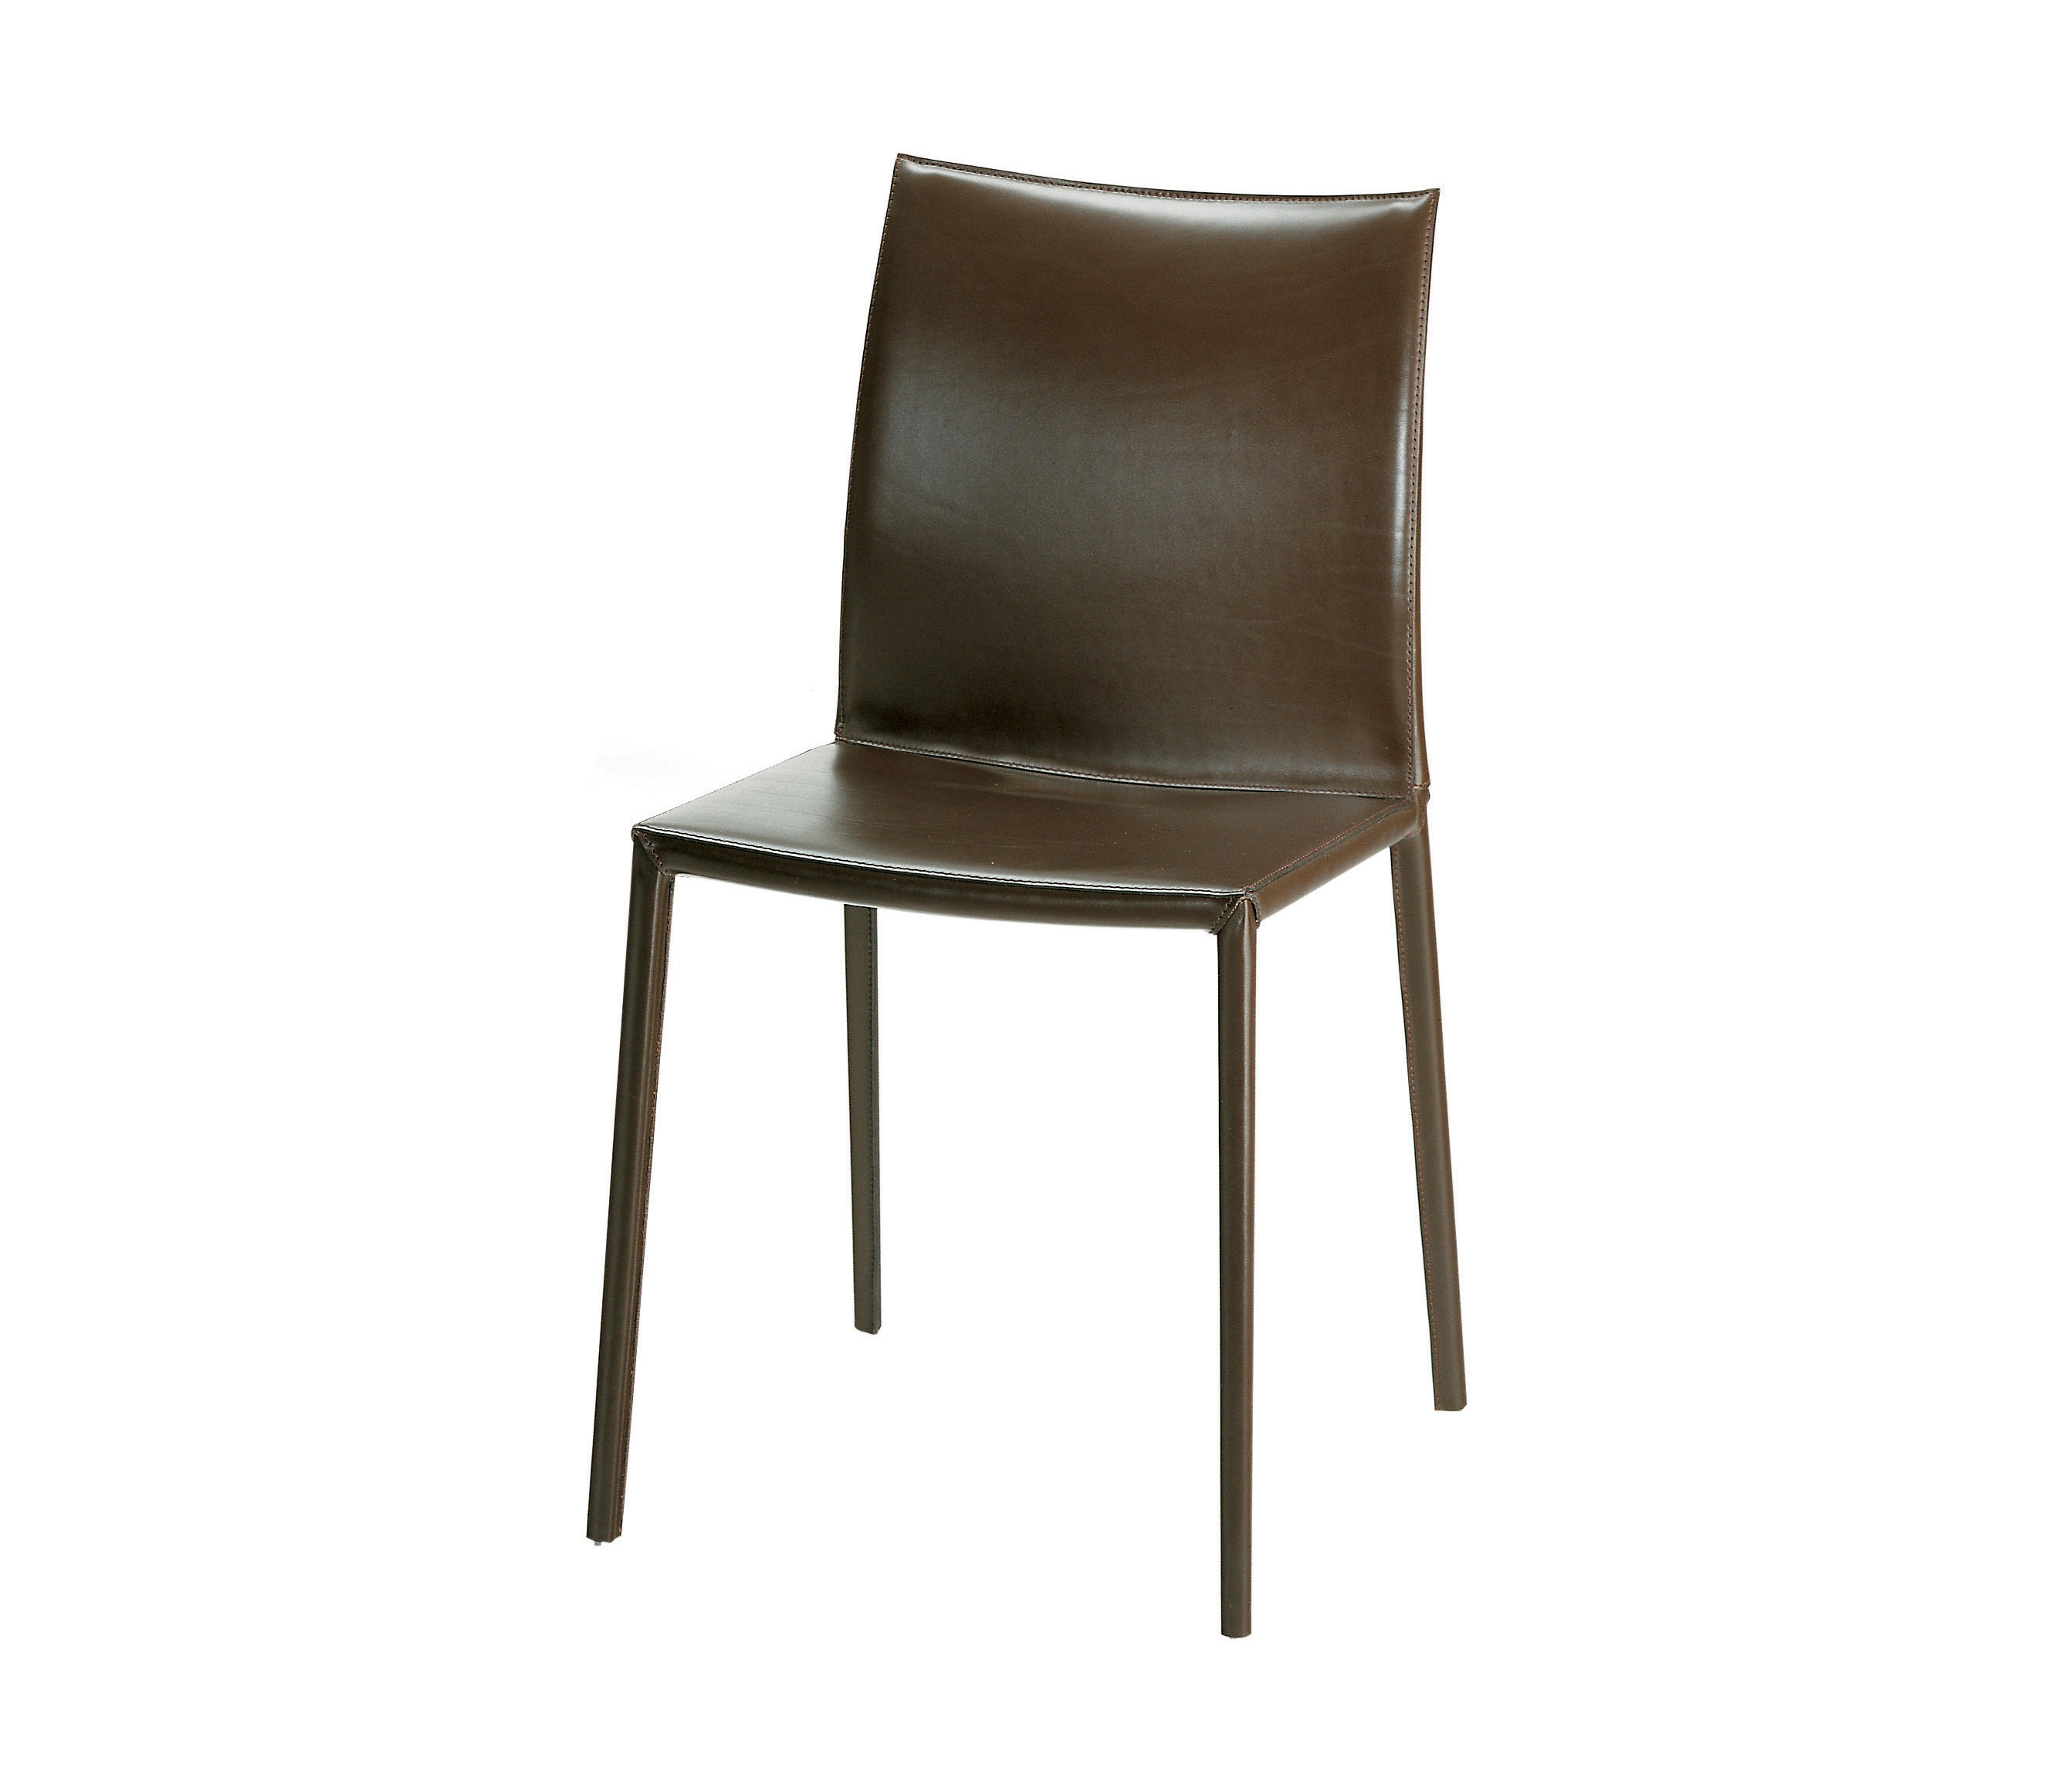 Offerta Sedia Wooden Lea 2083 Chairs From Zanotta Architonic